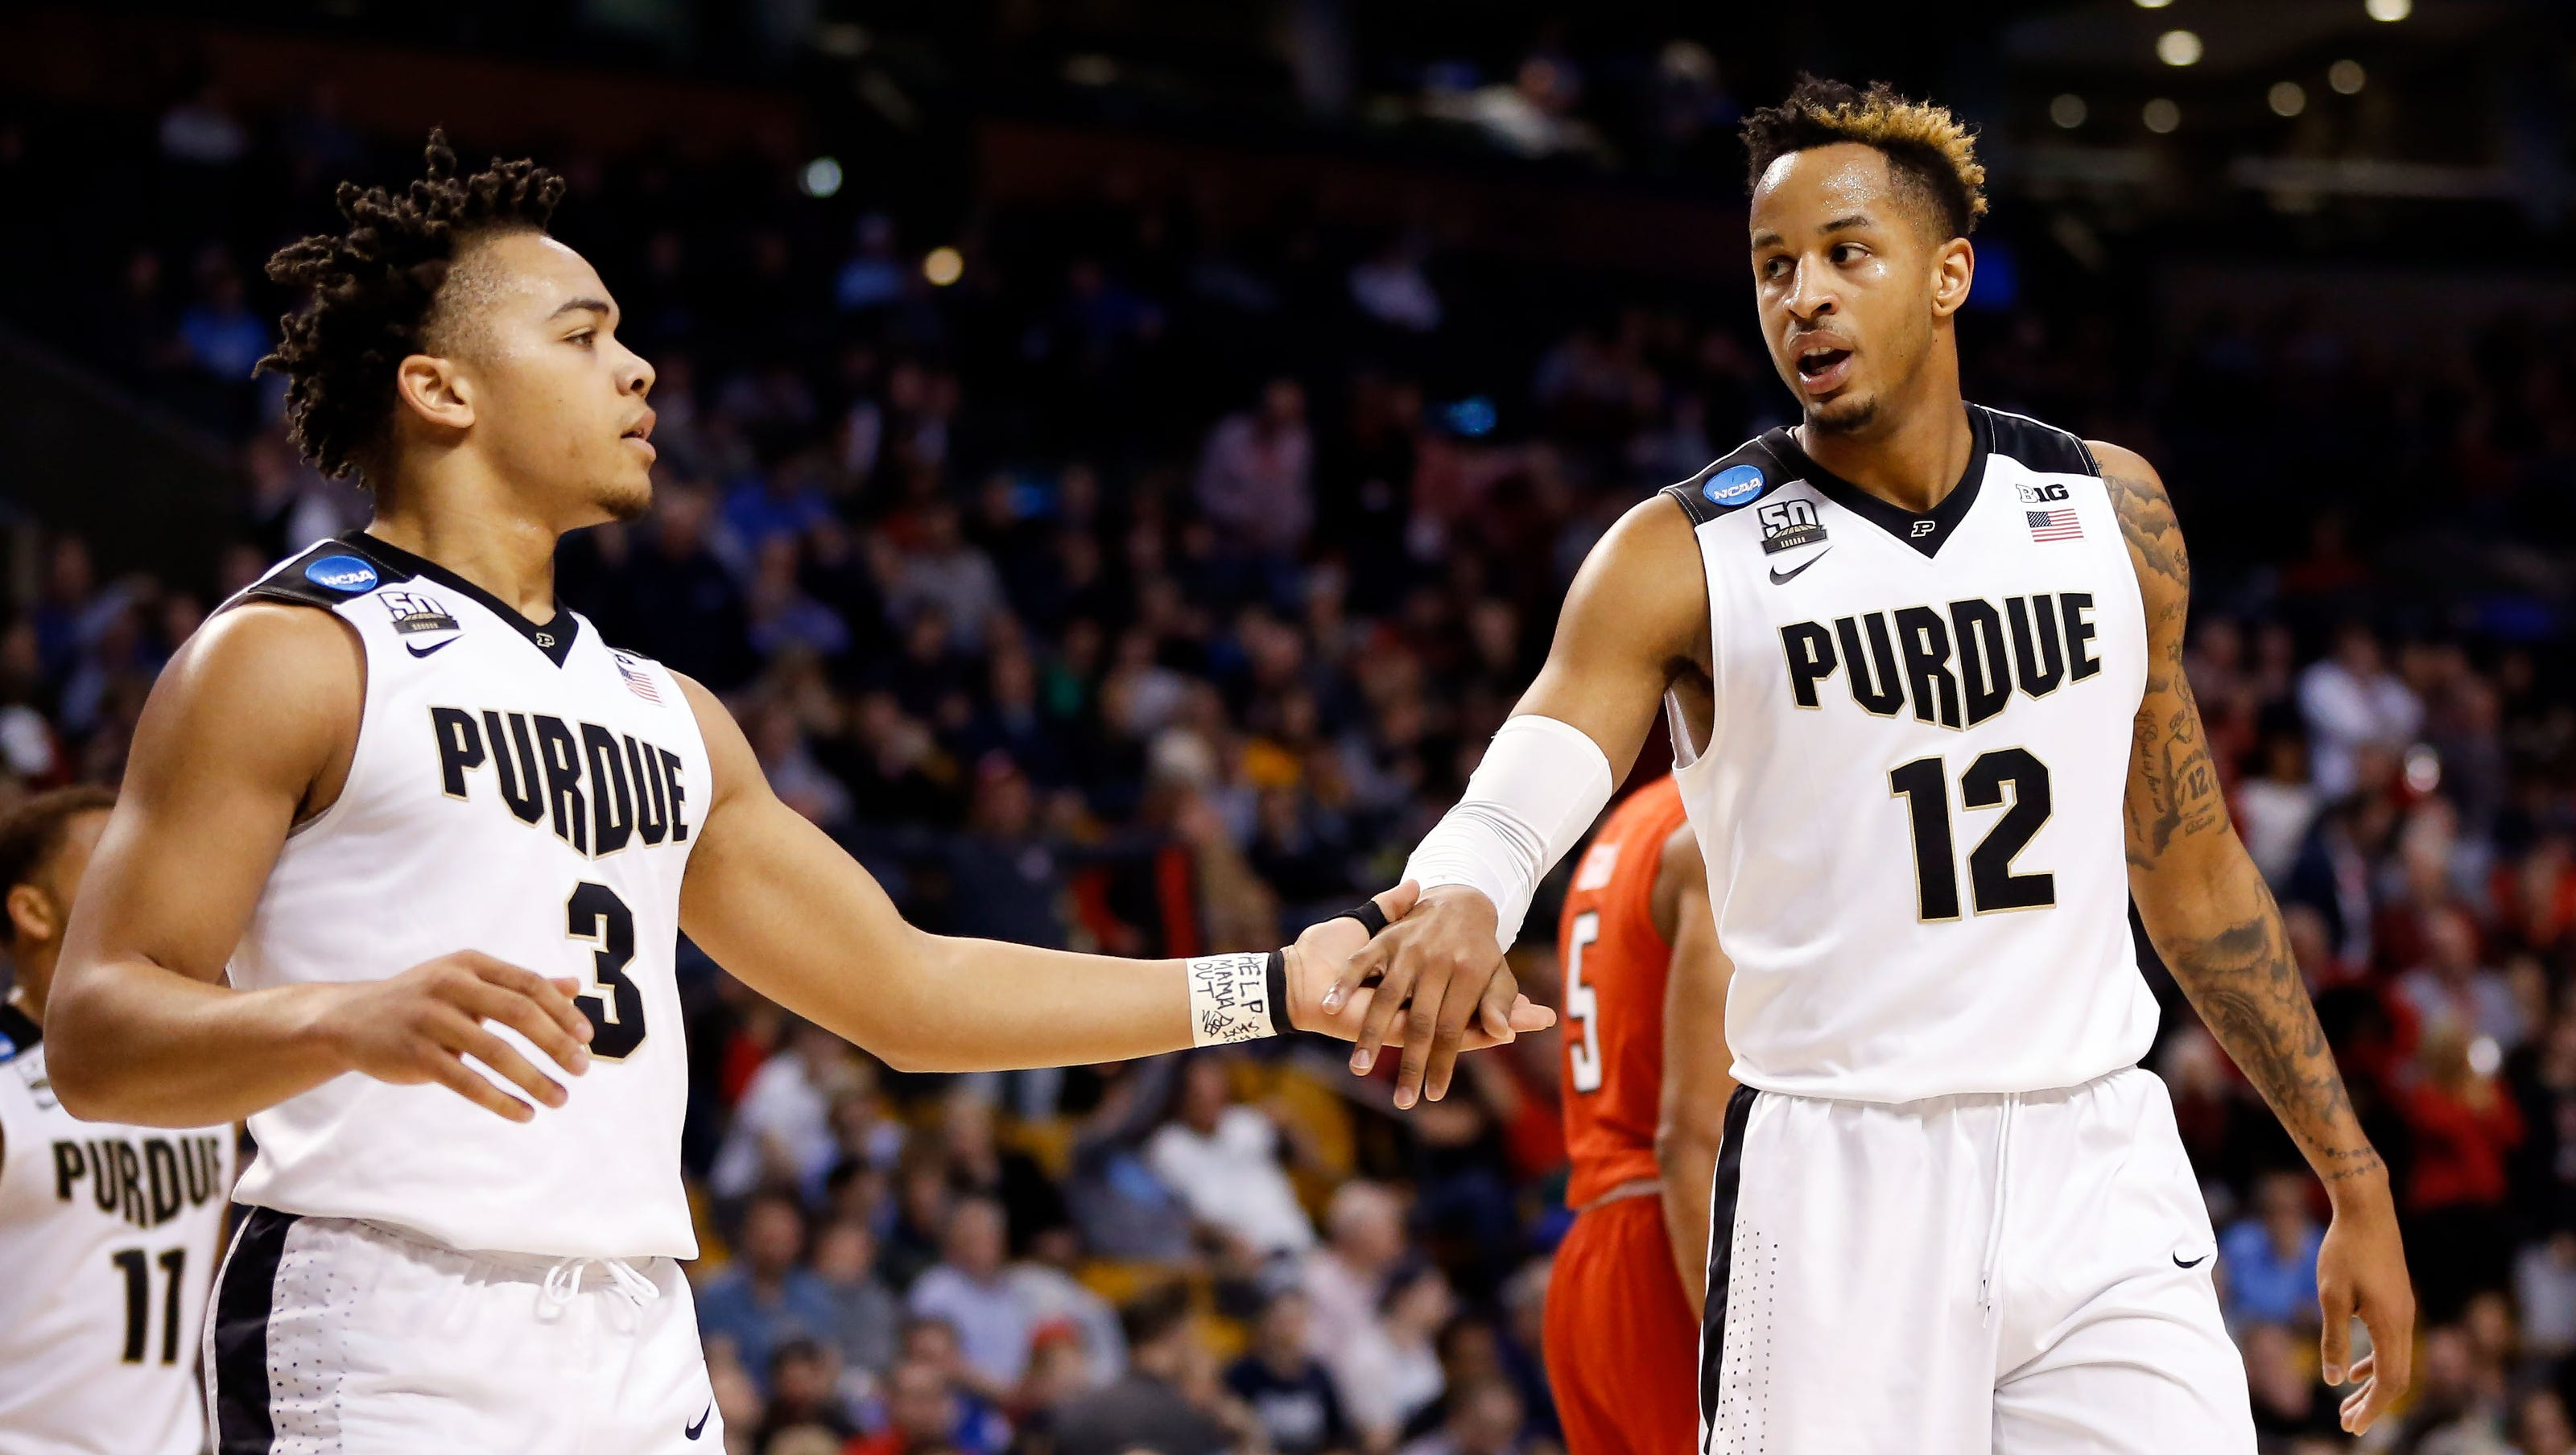 Purdue Athletics West Lafayette IN 154787 likes 6926 talking about this The Official Purdue Athletics Fan Page BOILER UP!